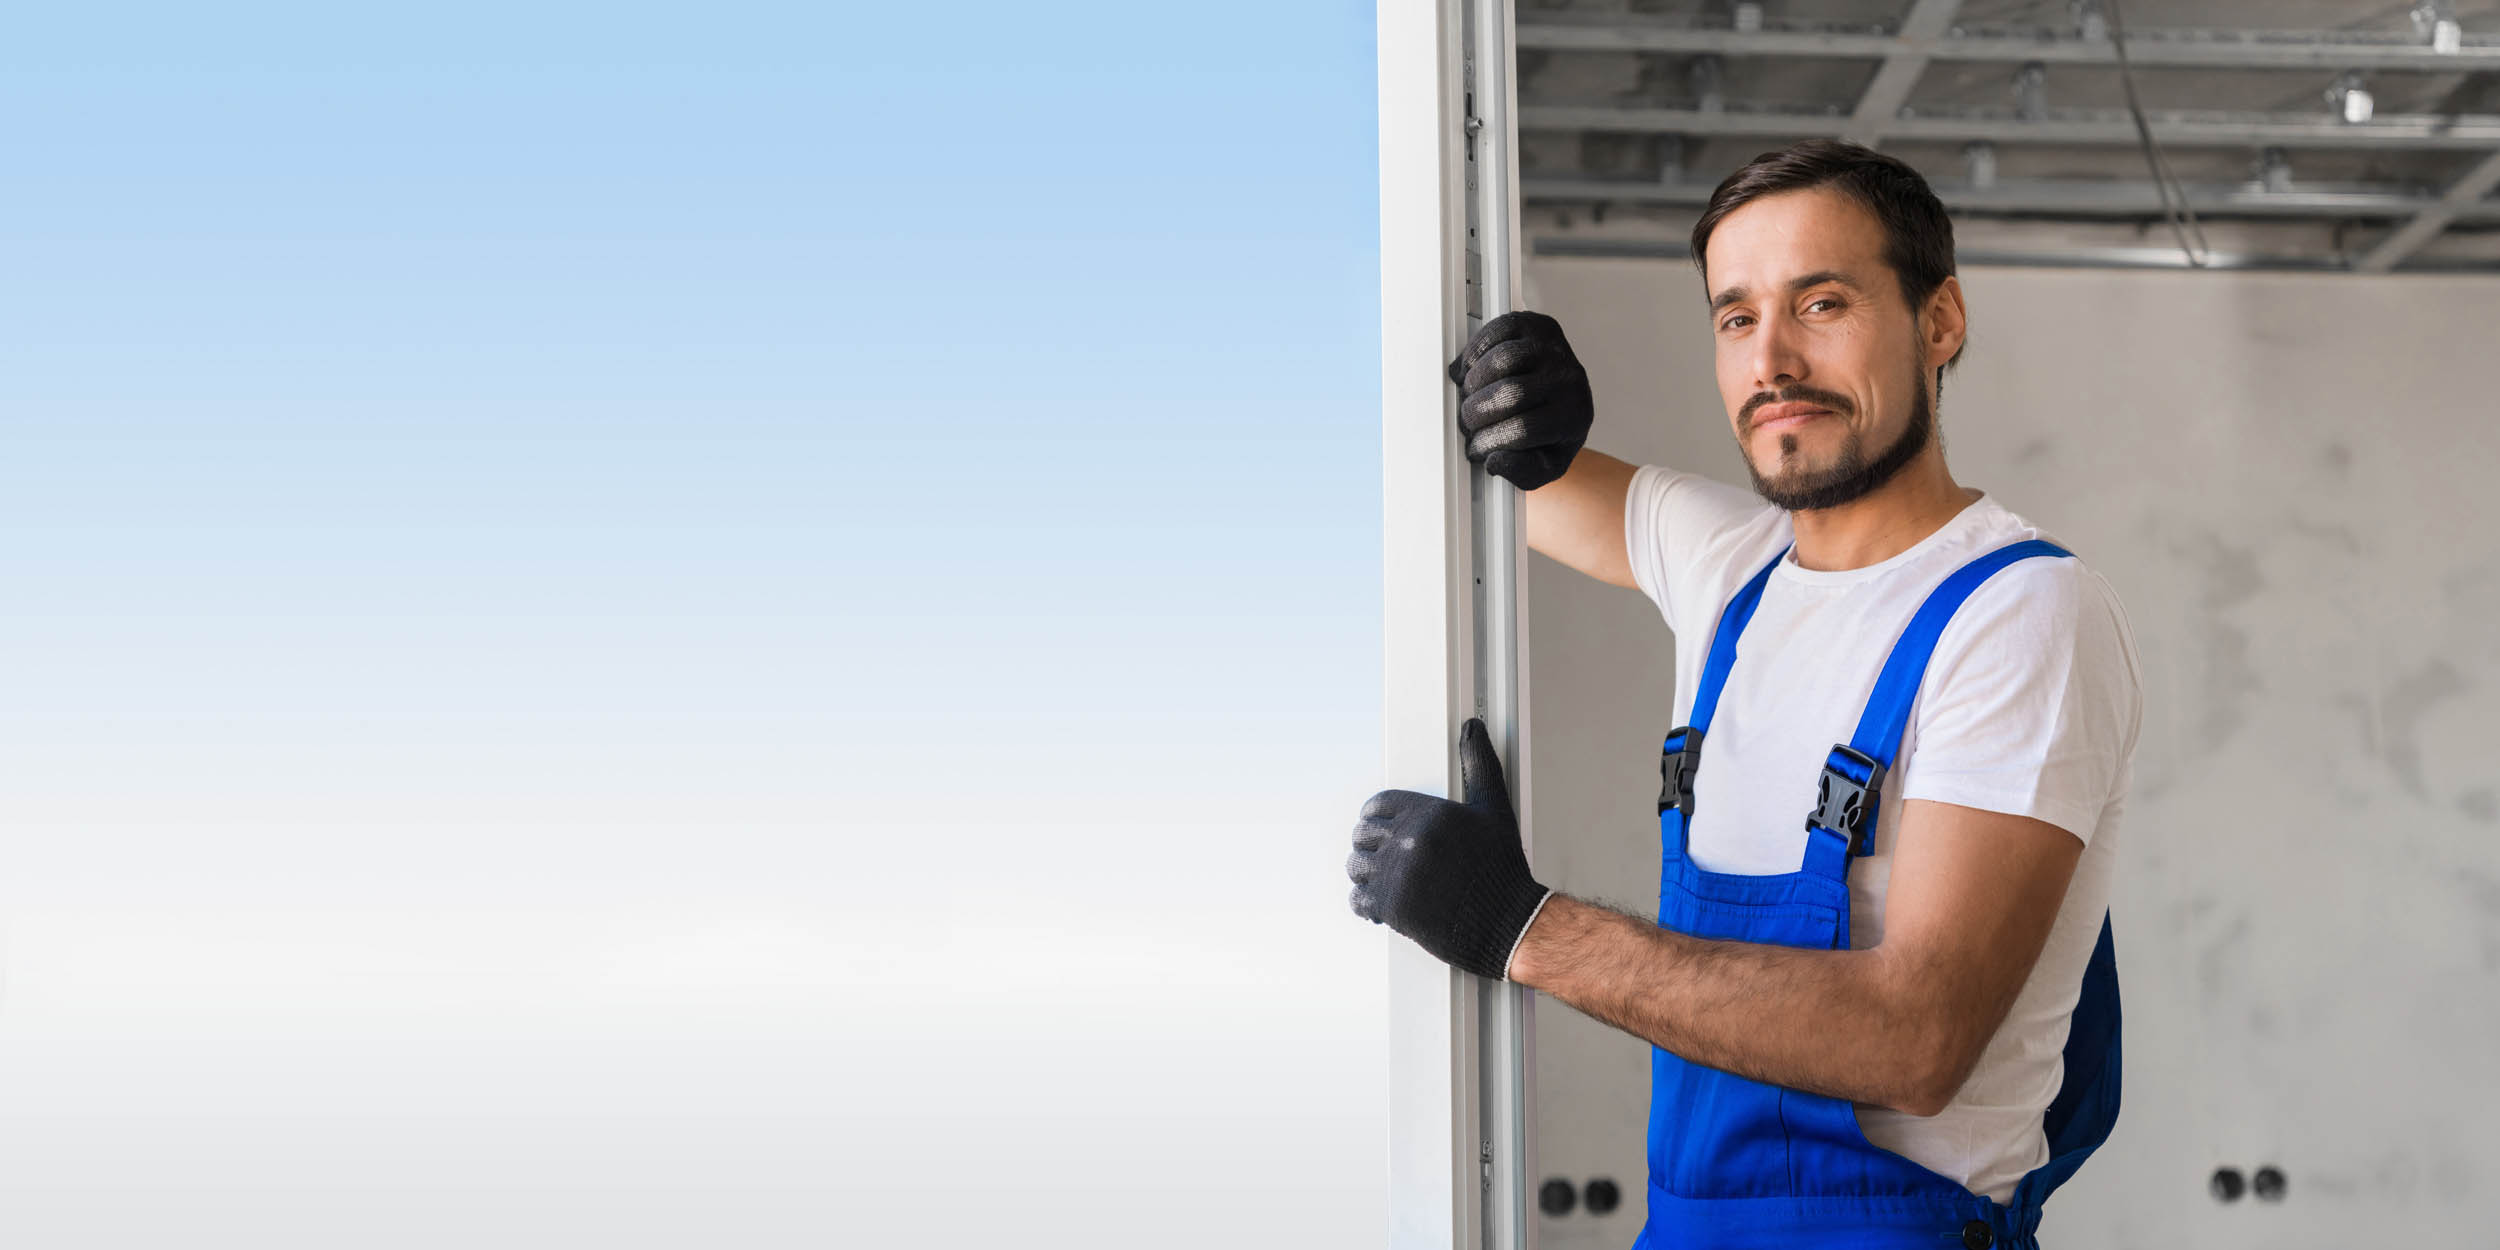 Adjuster in gloves installs the window in the apartment